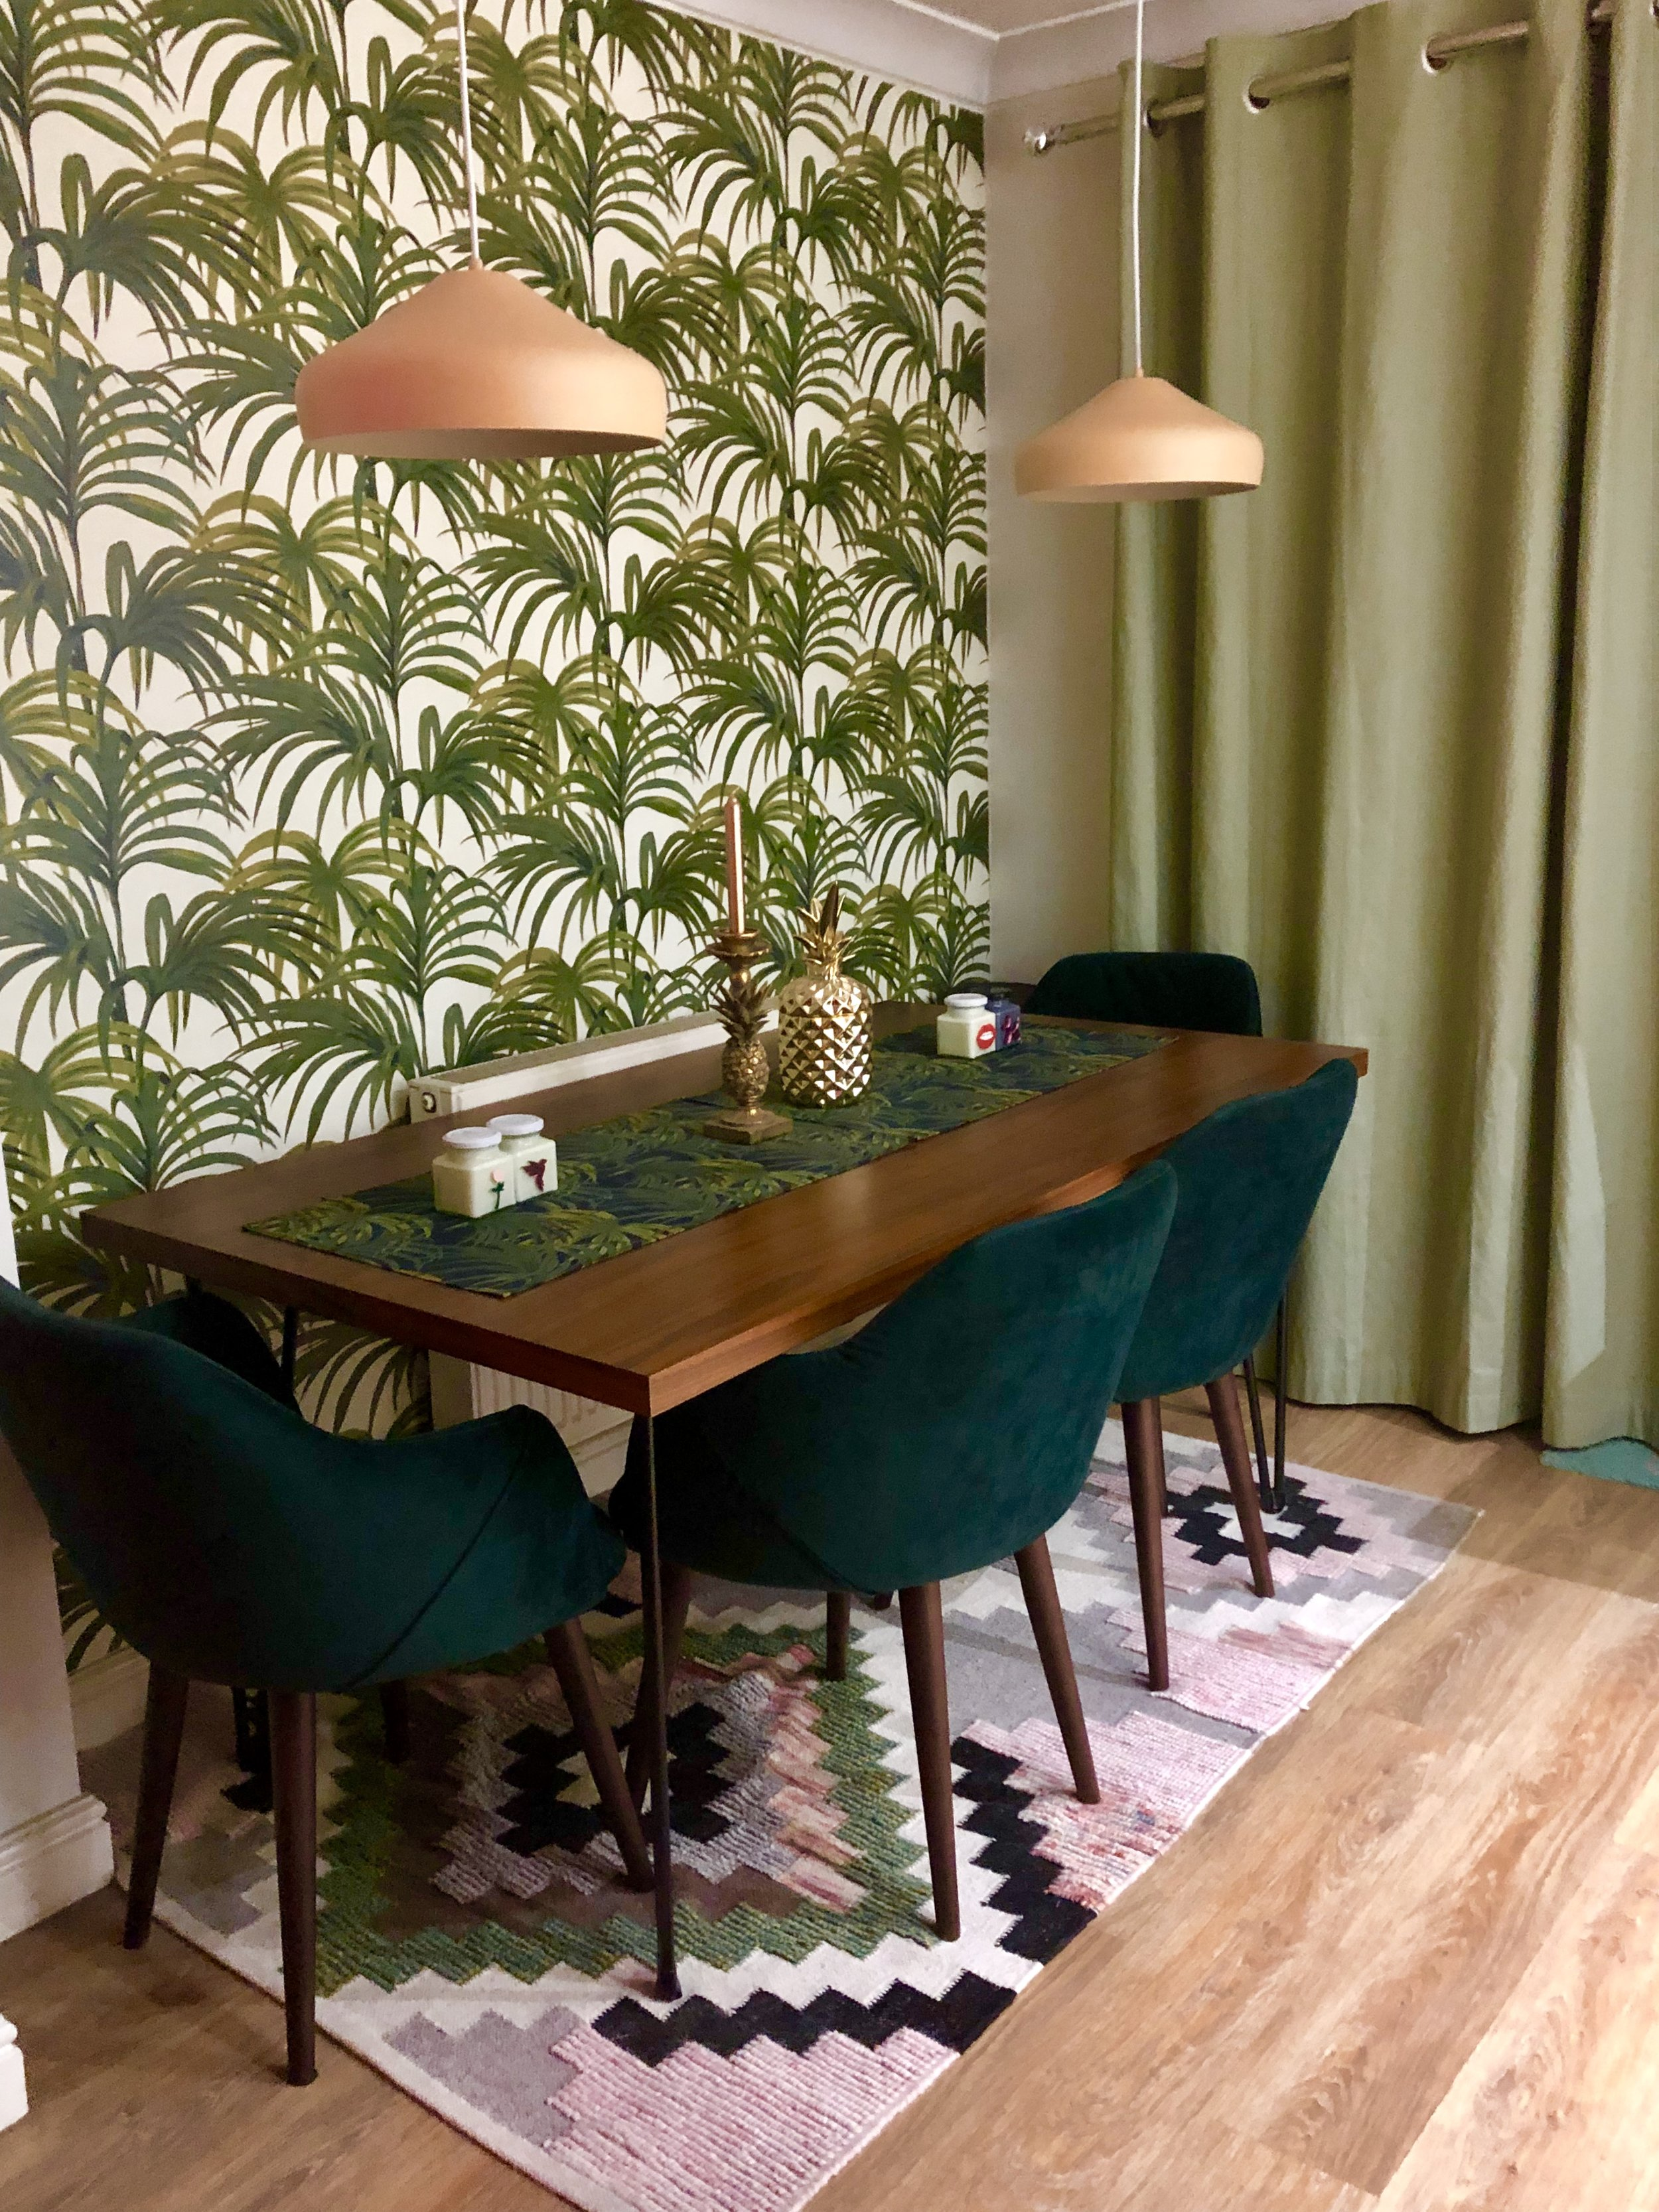 Dining room of dreams: Table - La Radoute Chairs - Made.com Wallpaper - House of Hackney Rug - La Radoute Curtains - Next Table runner - Tea Towels used as runner from House of Hackney Peach pendant lights - Made.com